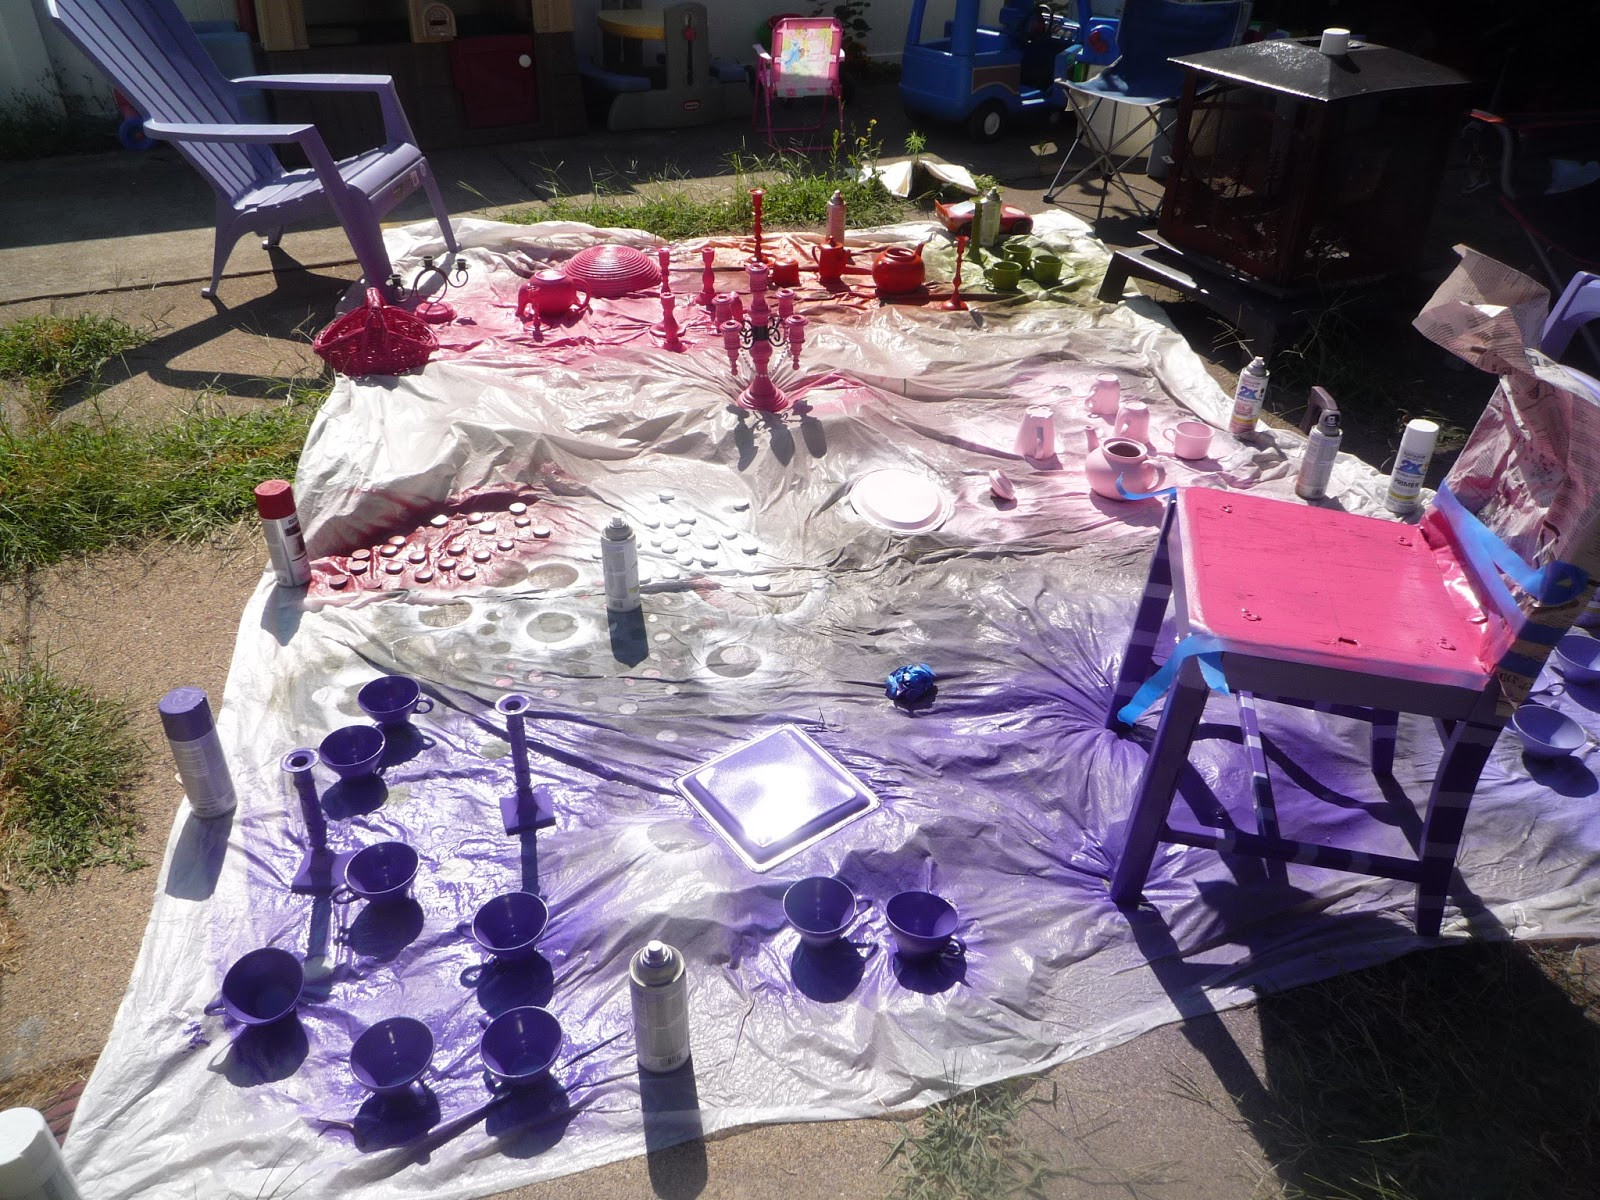 Tea Party Decorations DIY  A Busy Mom s Blog Mad Hatter Tea Party Decorations DIY